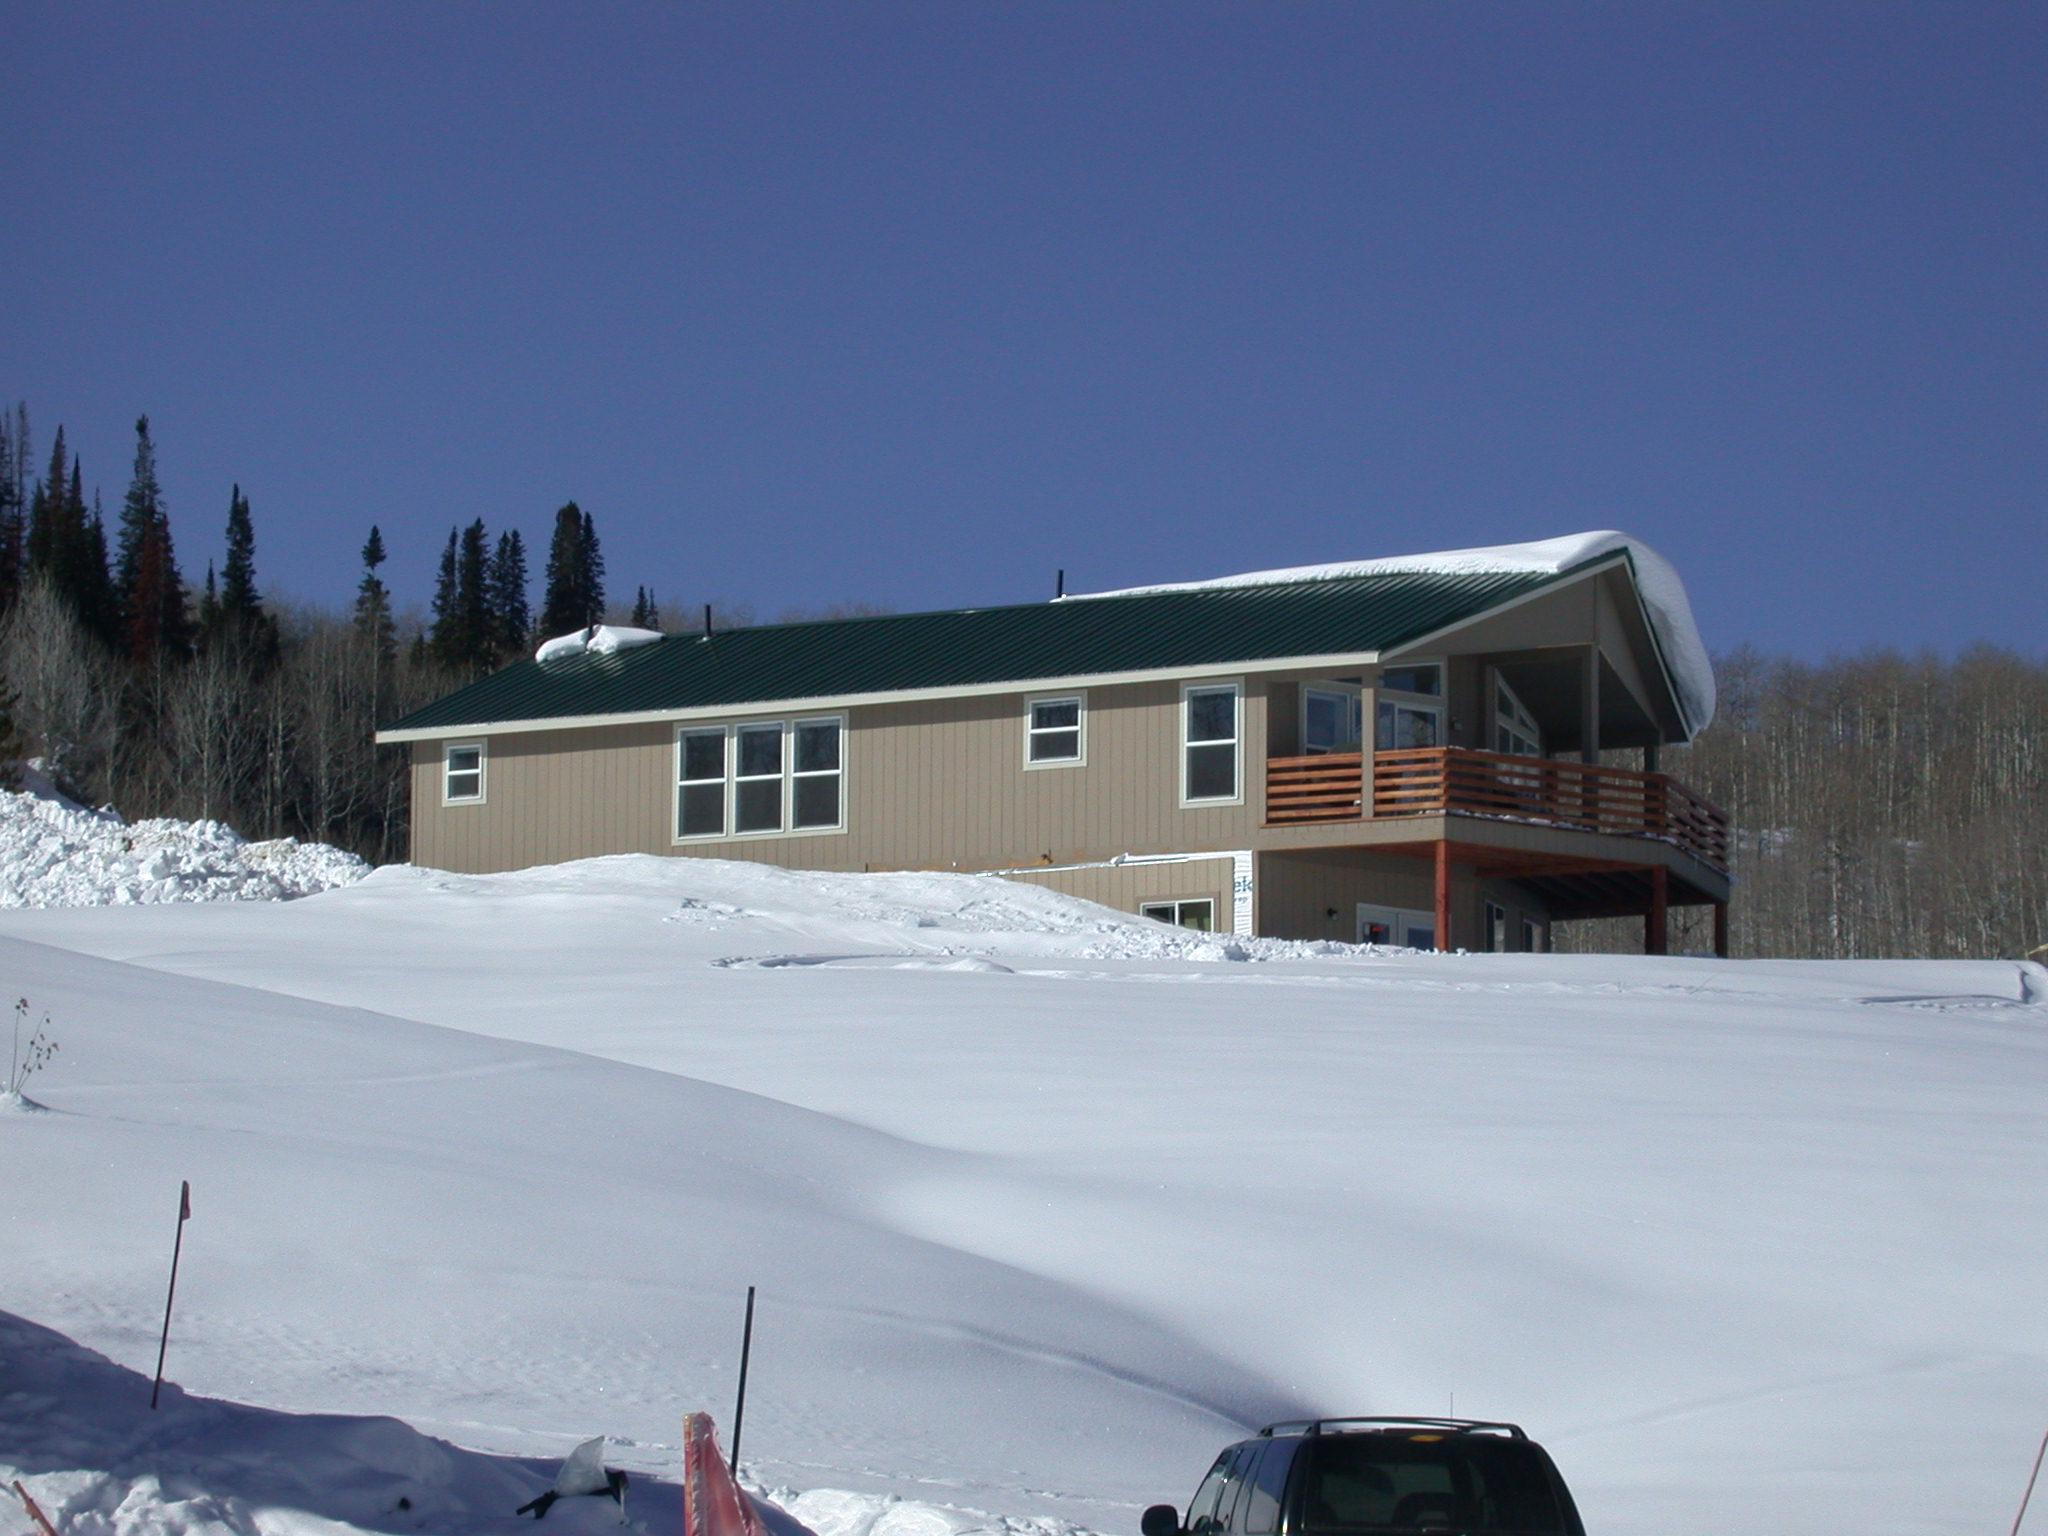 ForSaleByOwner (FSBO) home in Clark, CO at ForSaleByOwnerBuyersGuide.com